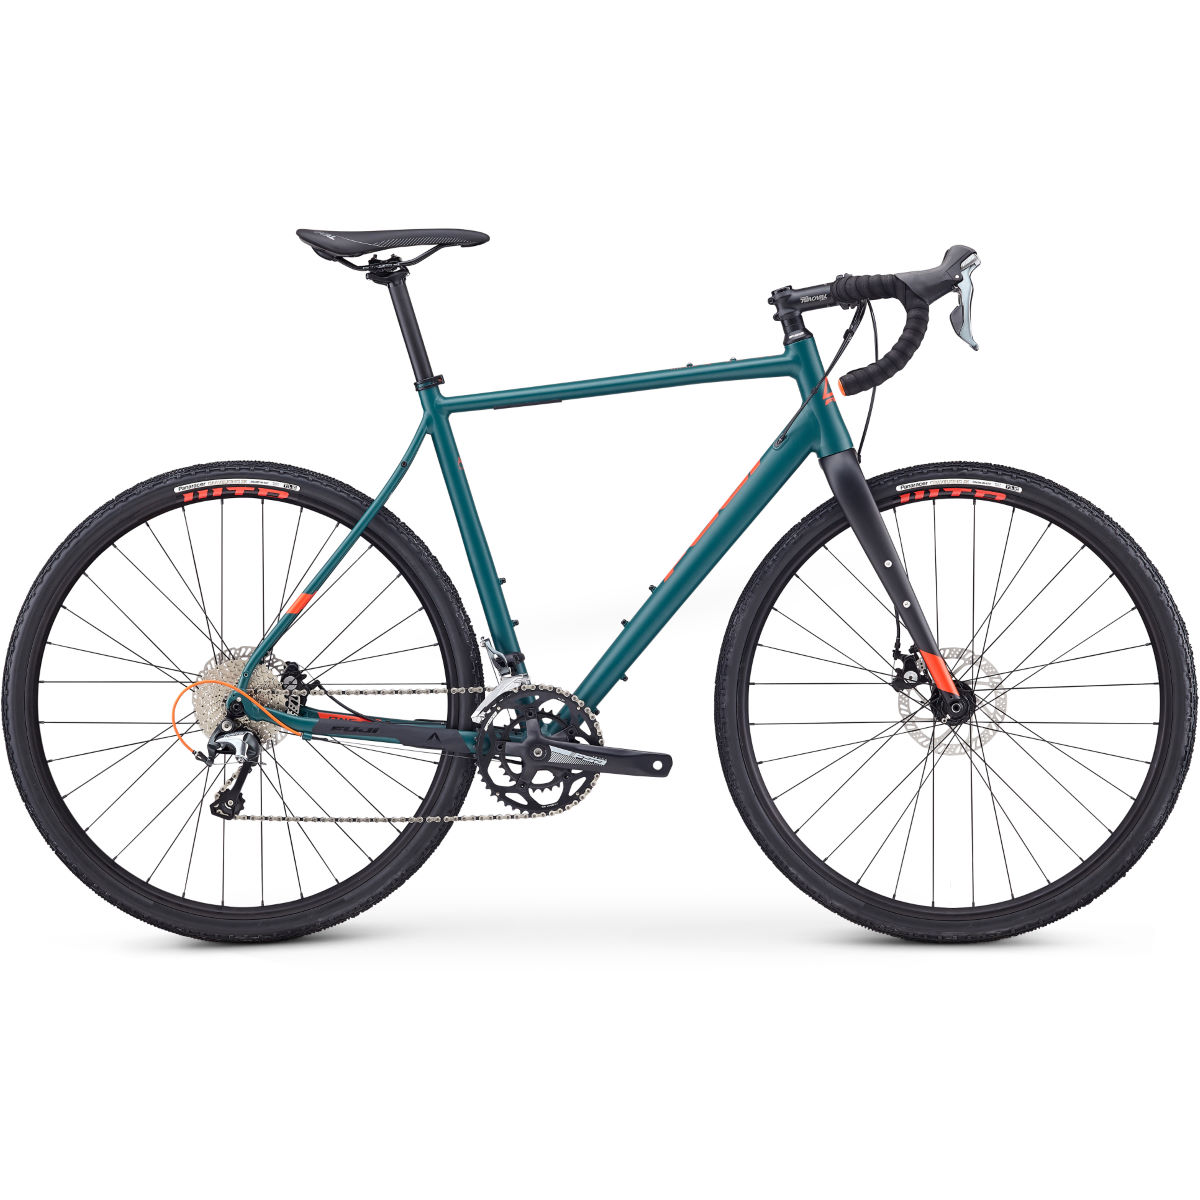 Fuji Fuji Jari 1.5 Adventure Road Bike (2020)   Adventure Bikes